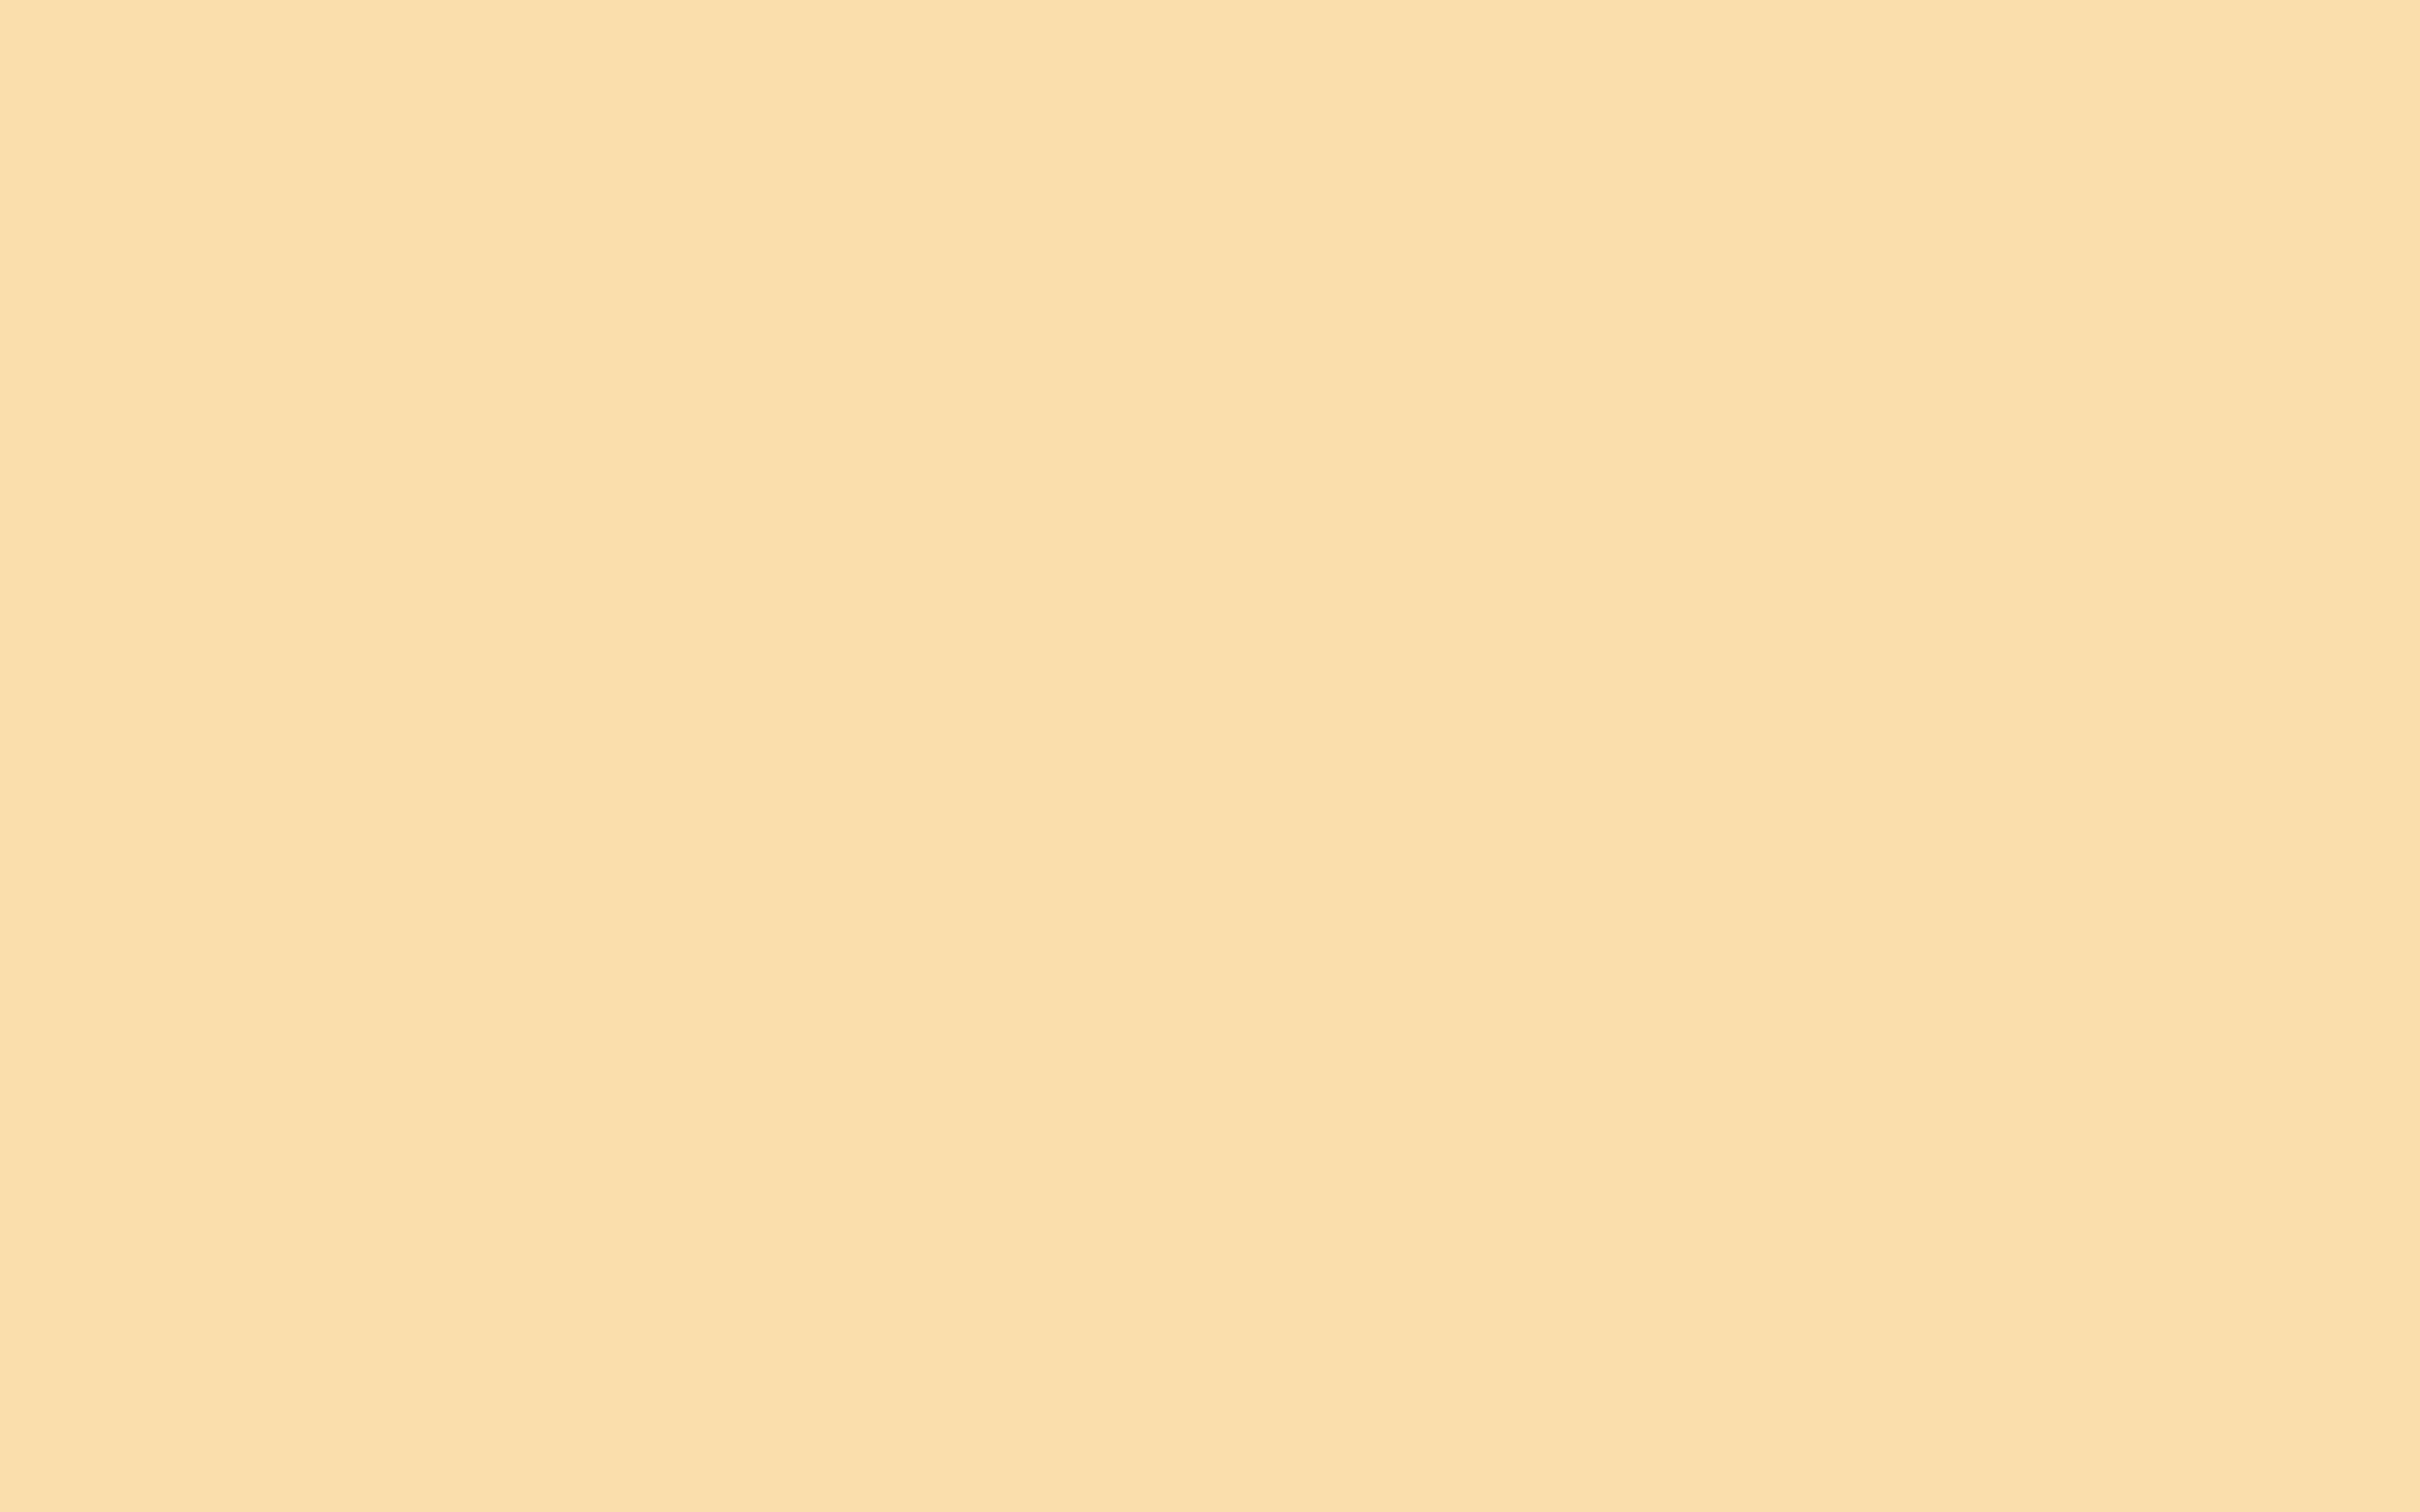 2560x1600 Peach-yellow Solid Color Background